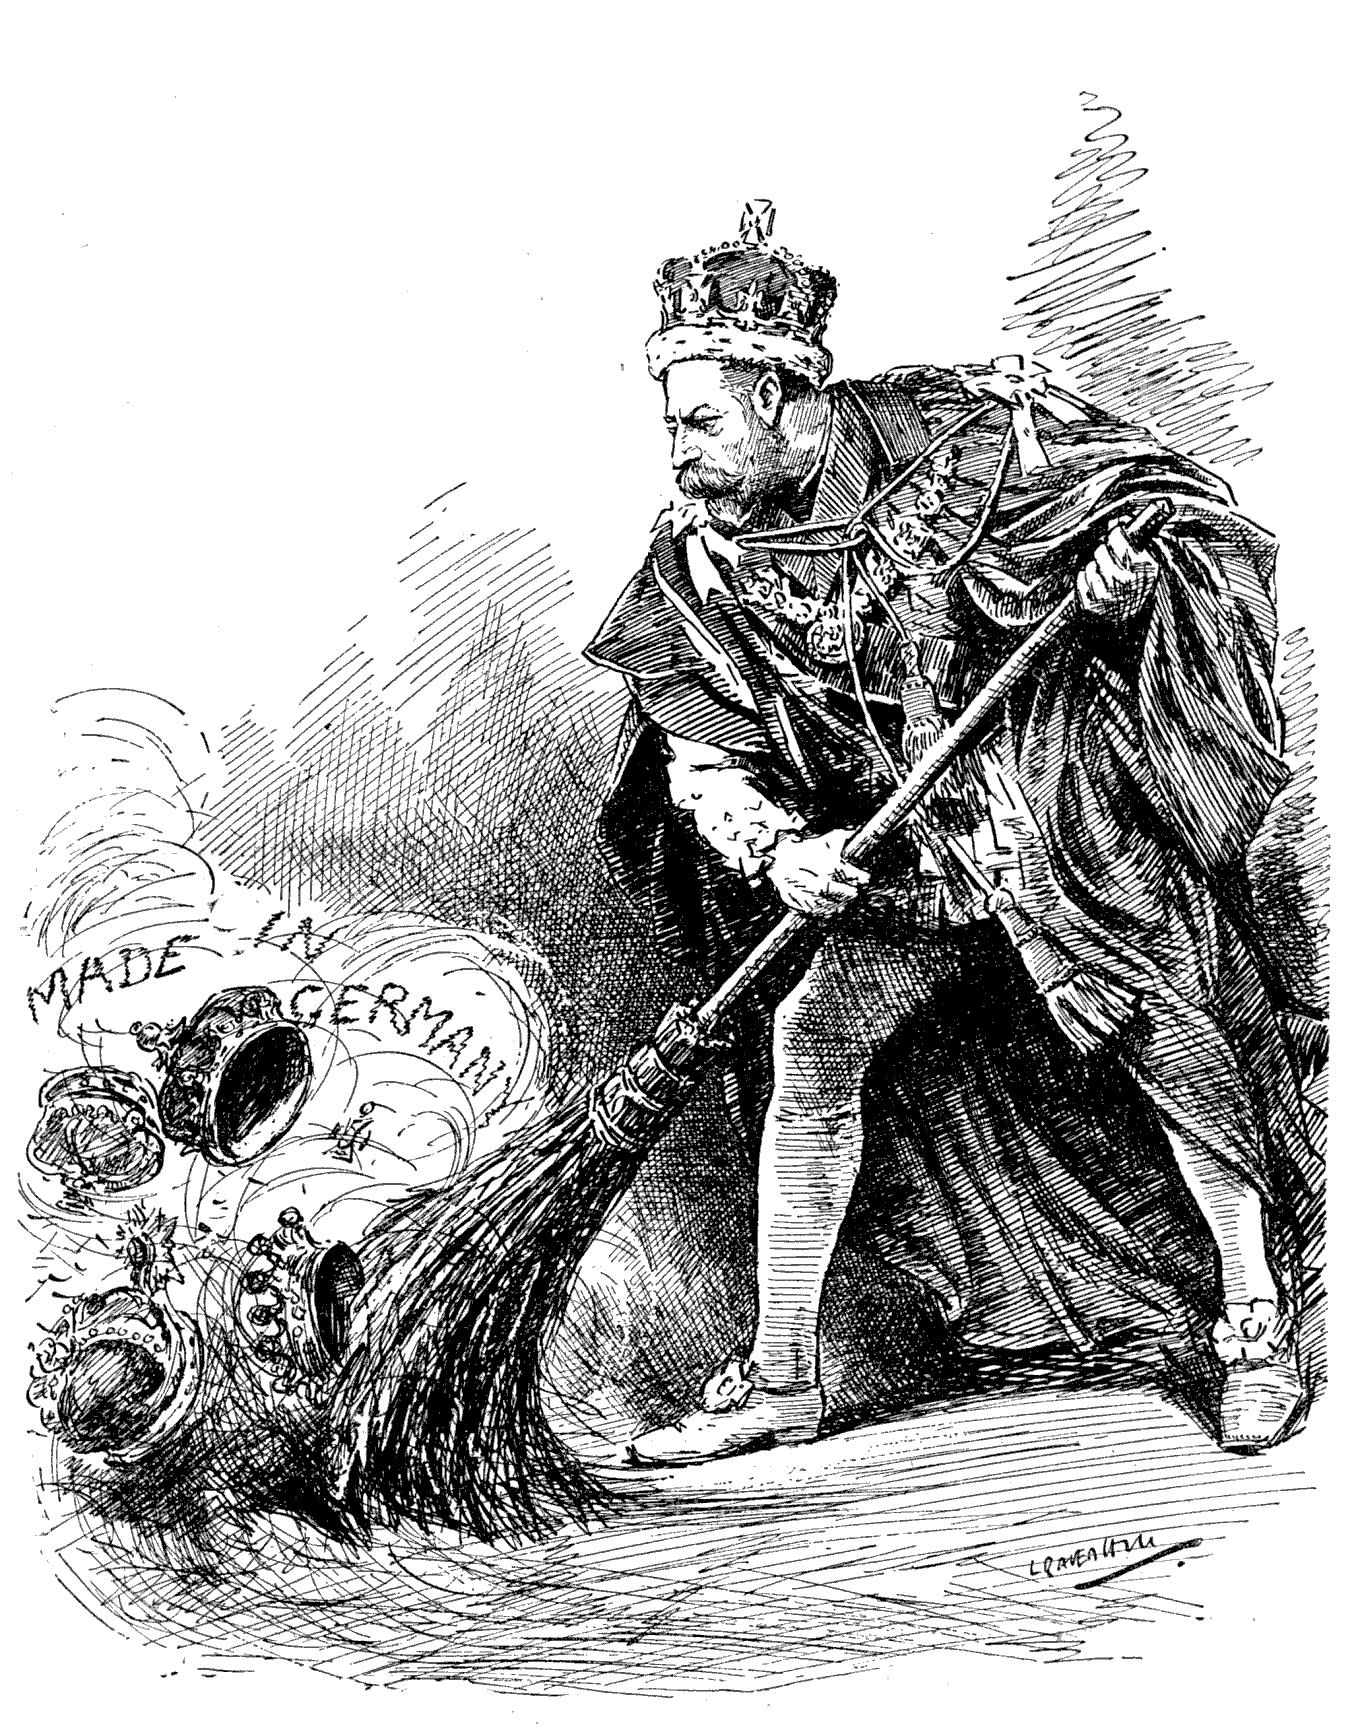 George V of the United Kingdom sweeping away the German titles held by his family. The picture was made after the King decided to abolish all German titles and rename his house from Saxe-Coburg-Gotha to Windsor.